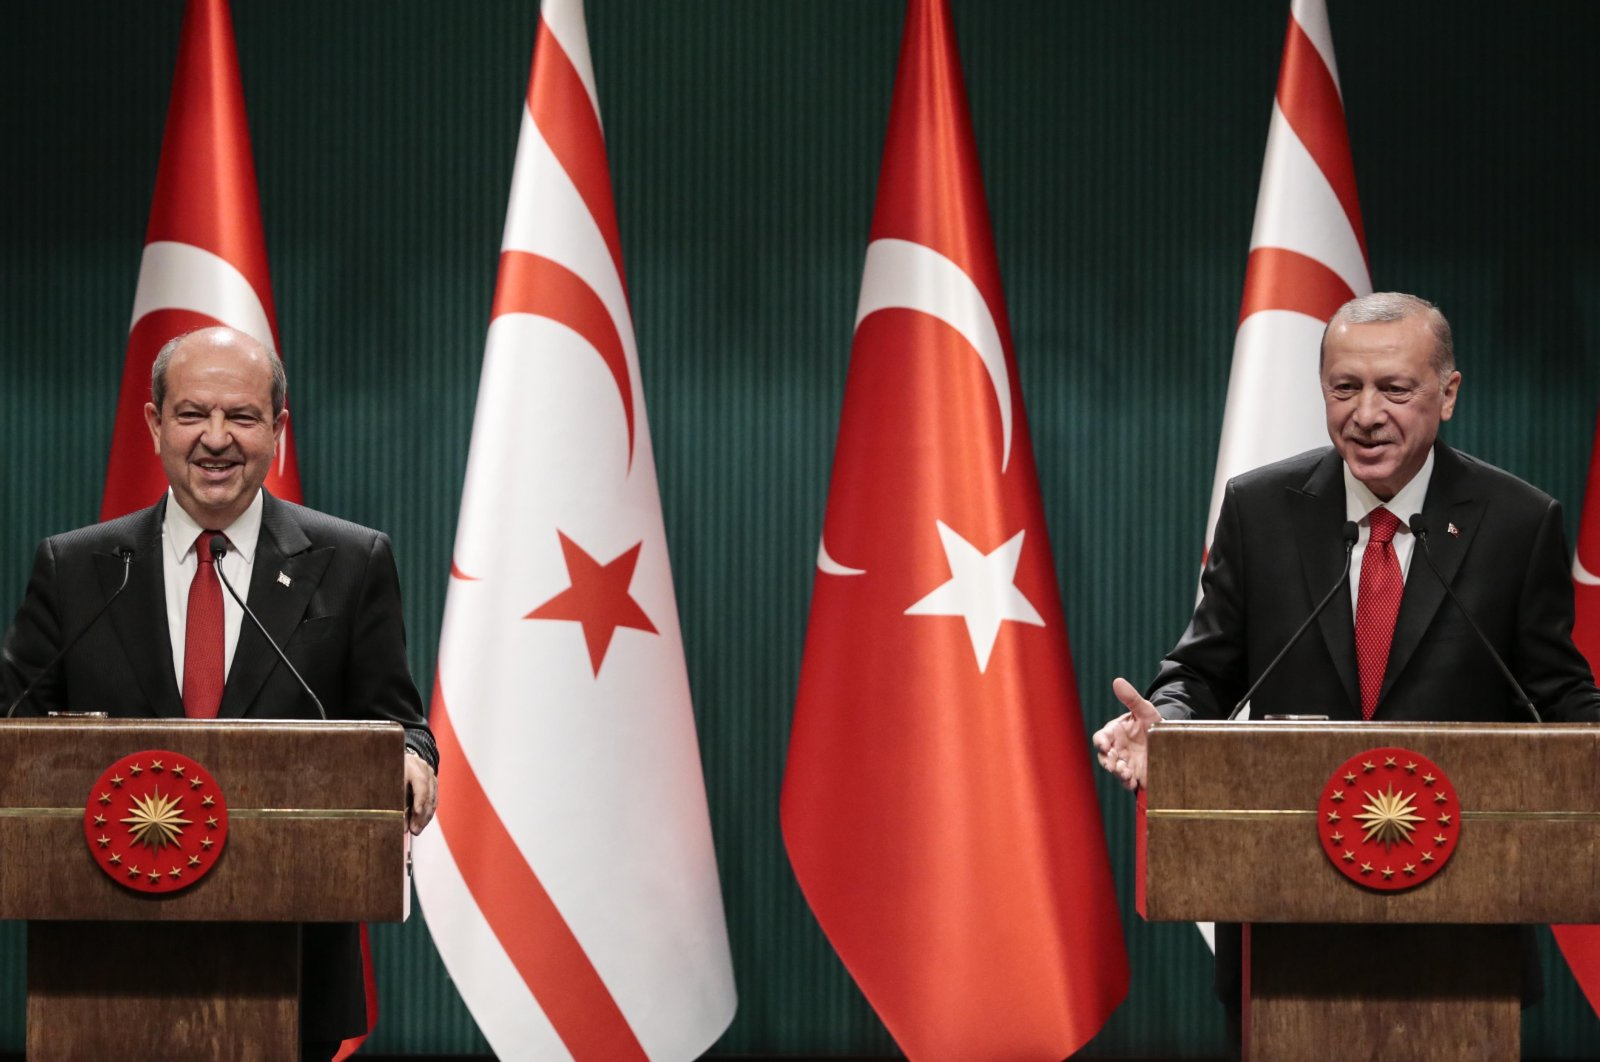 President Recep Tayyip Erdoğan, and Ersin Tatar, newly elected president of Turkish Republic of Northern Cyprus' (TRNC) speak to the media at a joint press conference after their talks, in Ankara, Oct. 26, 2020. (AA Photo)